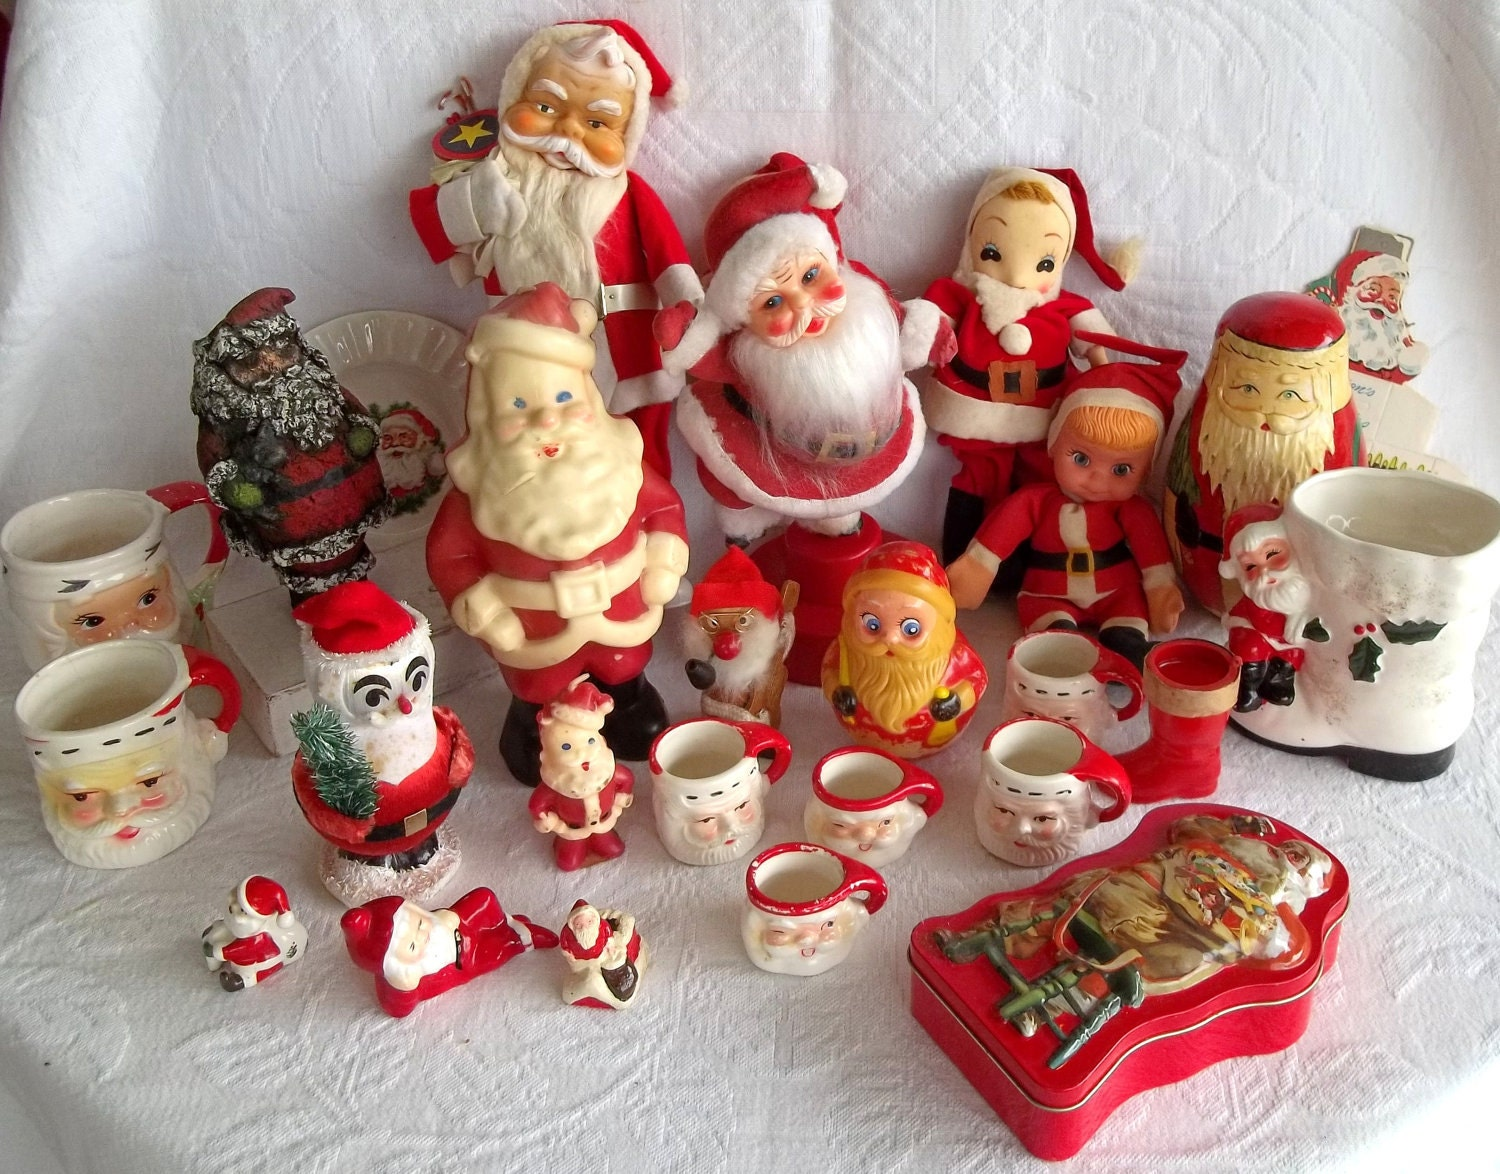 Vintage Christmas Santa Claus Decorations 1940s-1980s 28